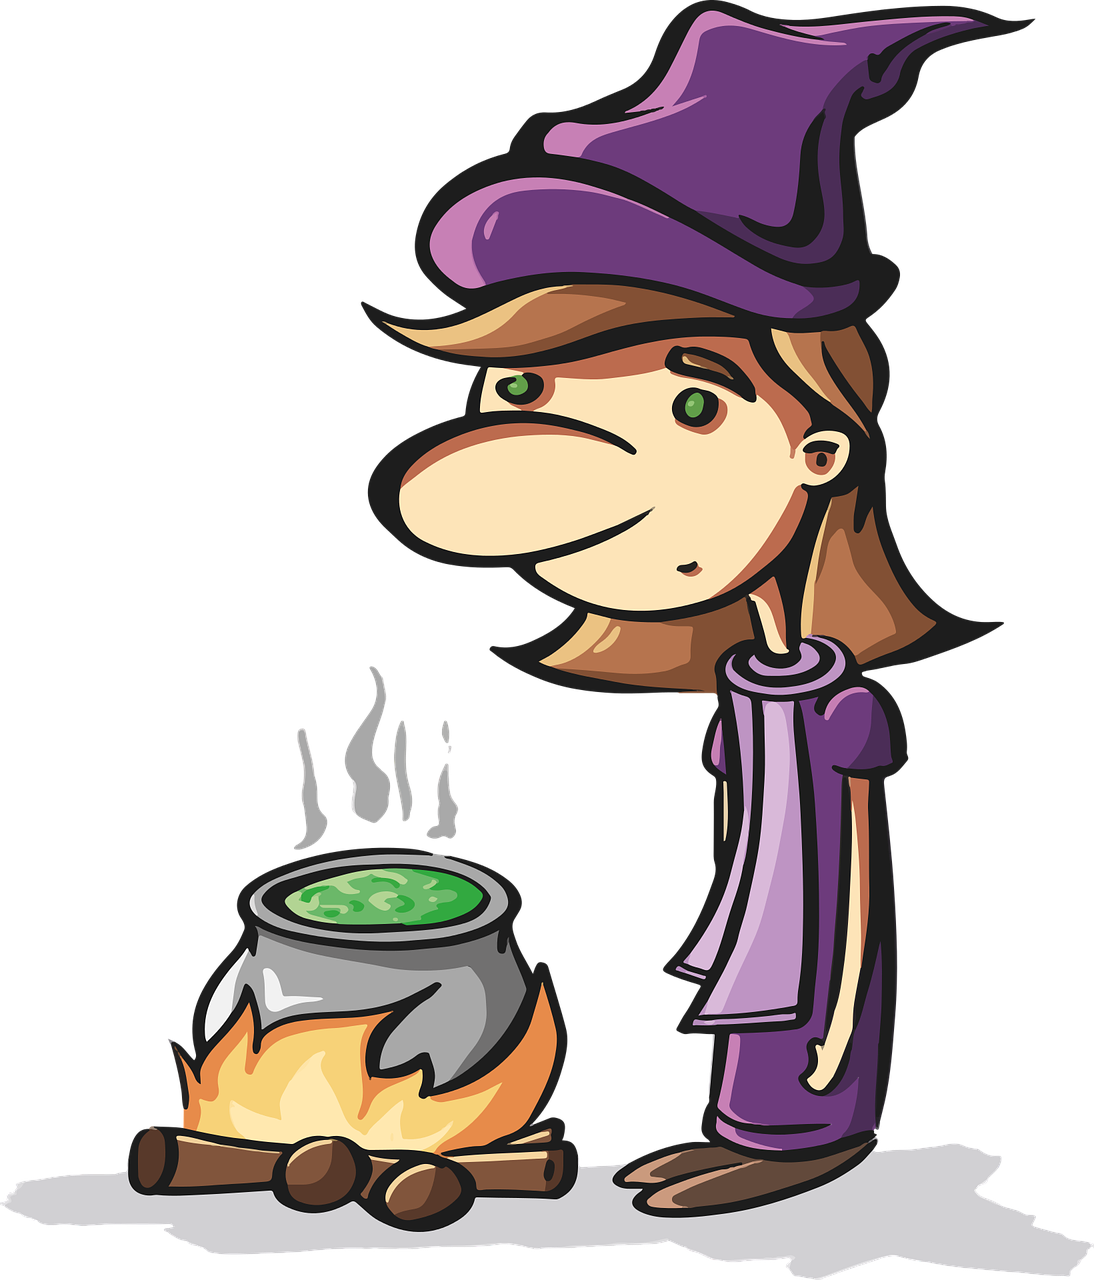 the witch, helloween, horror, mystical, comic, pot, Free vector graphics, Free illustrations,free pictures, free photos, free images, royalty free, free illustrations, public domain